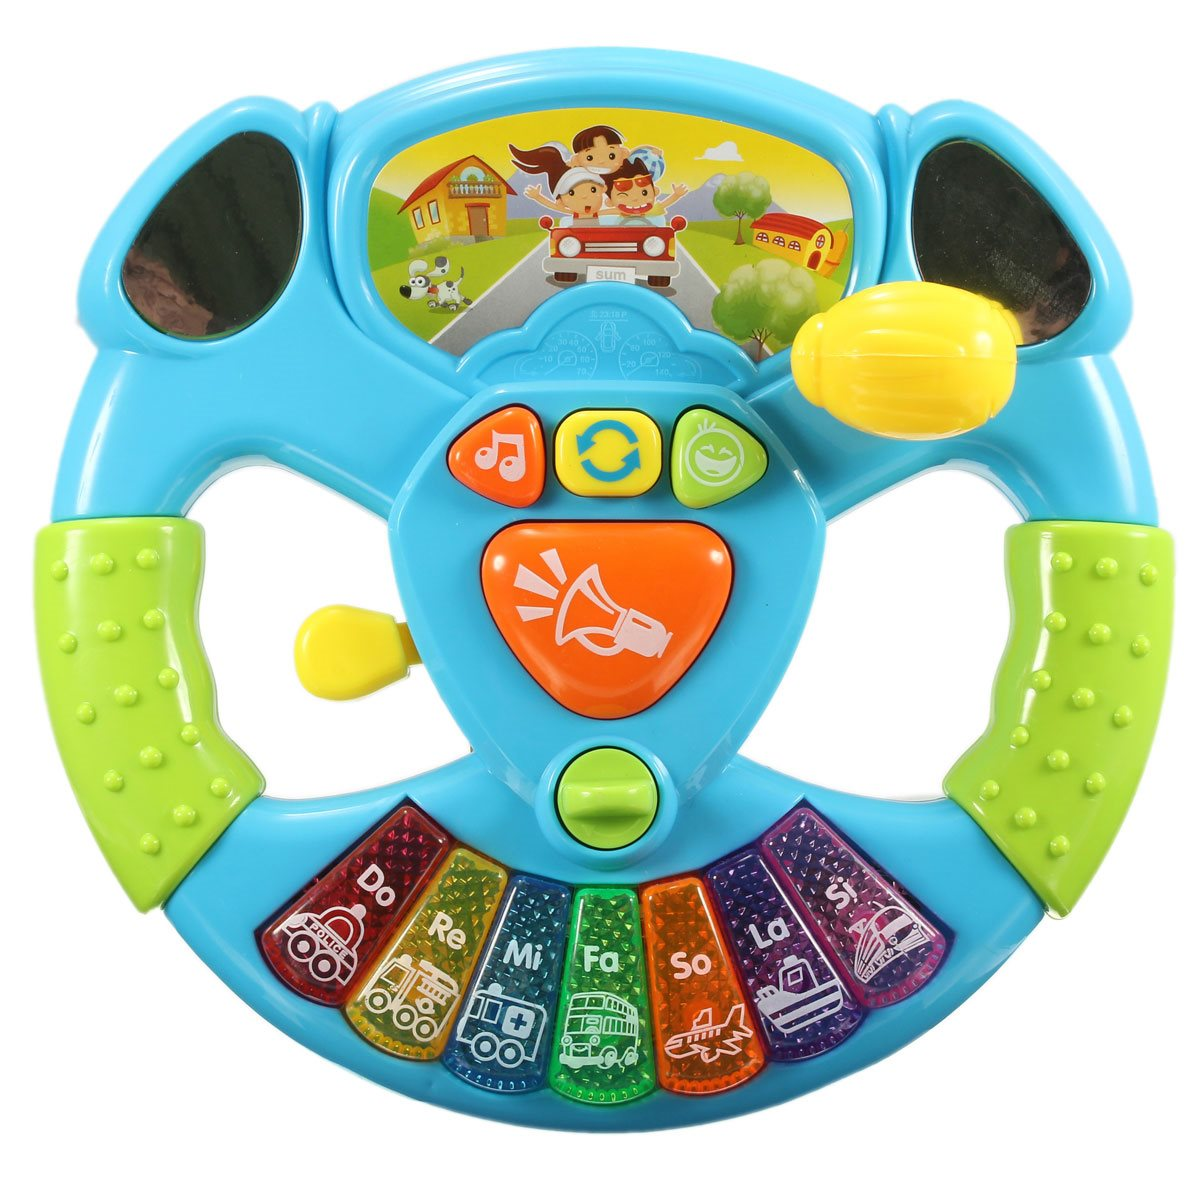 Music Lights Education Intelligence Toy Steering Wheel Transportation Tools Baby Electronic Multifunctional Button Color Scales(China (Mainland))